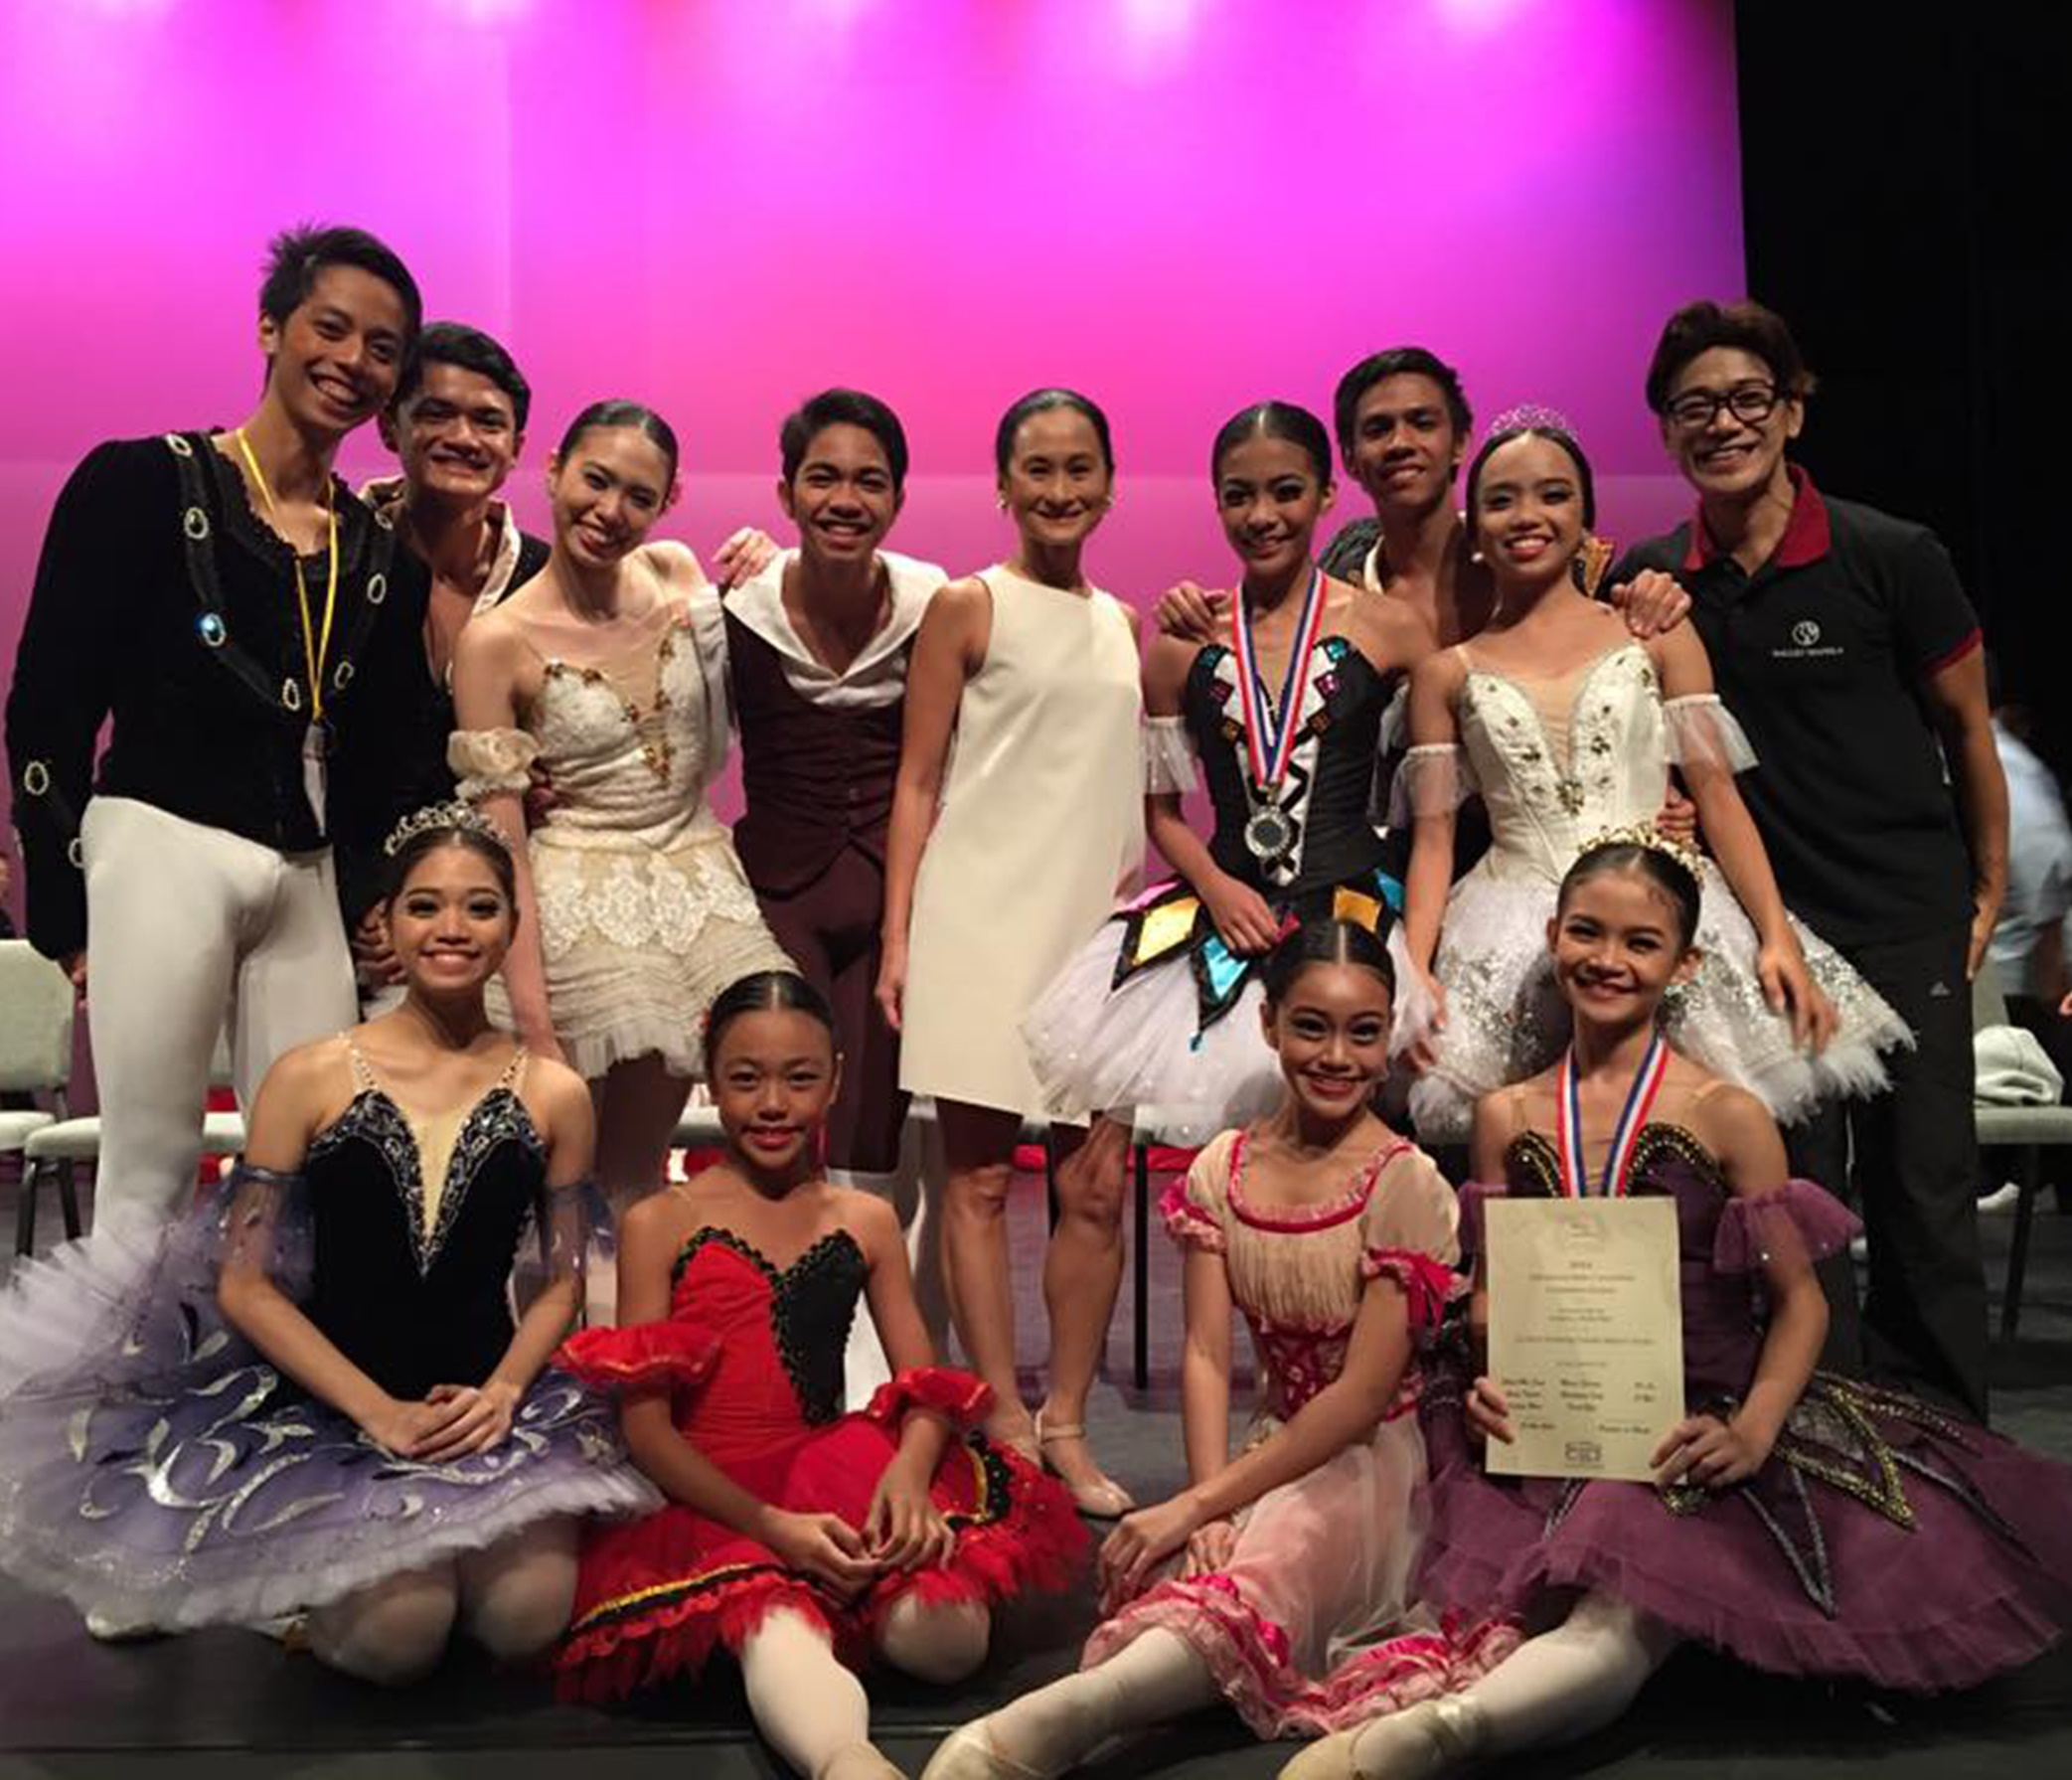 Shaira Comeros (front, rightmost) was named Most Promising Female Dancer Award atthe 2016 Asian Grand Prix. With her in the photo are 11 of the 18-member BM delegation who also reached the finals: (standing, from left) Rodney Catubay, Joshua Encisco, Danielle De Guzman, Alvin Dictado, artistic director Lisa Macuja-Elizalde, silver medalist Nicole Barroso, Raymond Salcedo, Lyssa Apilado, and co-artistic director Osias Barroso; (seated, from left) Ana Andes, Loraine Gaile Jarlega and Ashley Salonga.